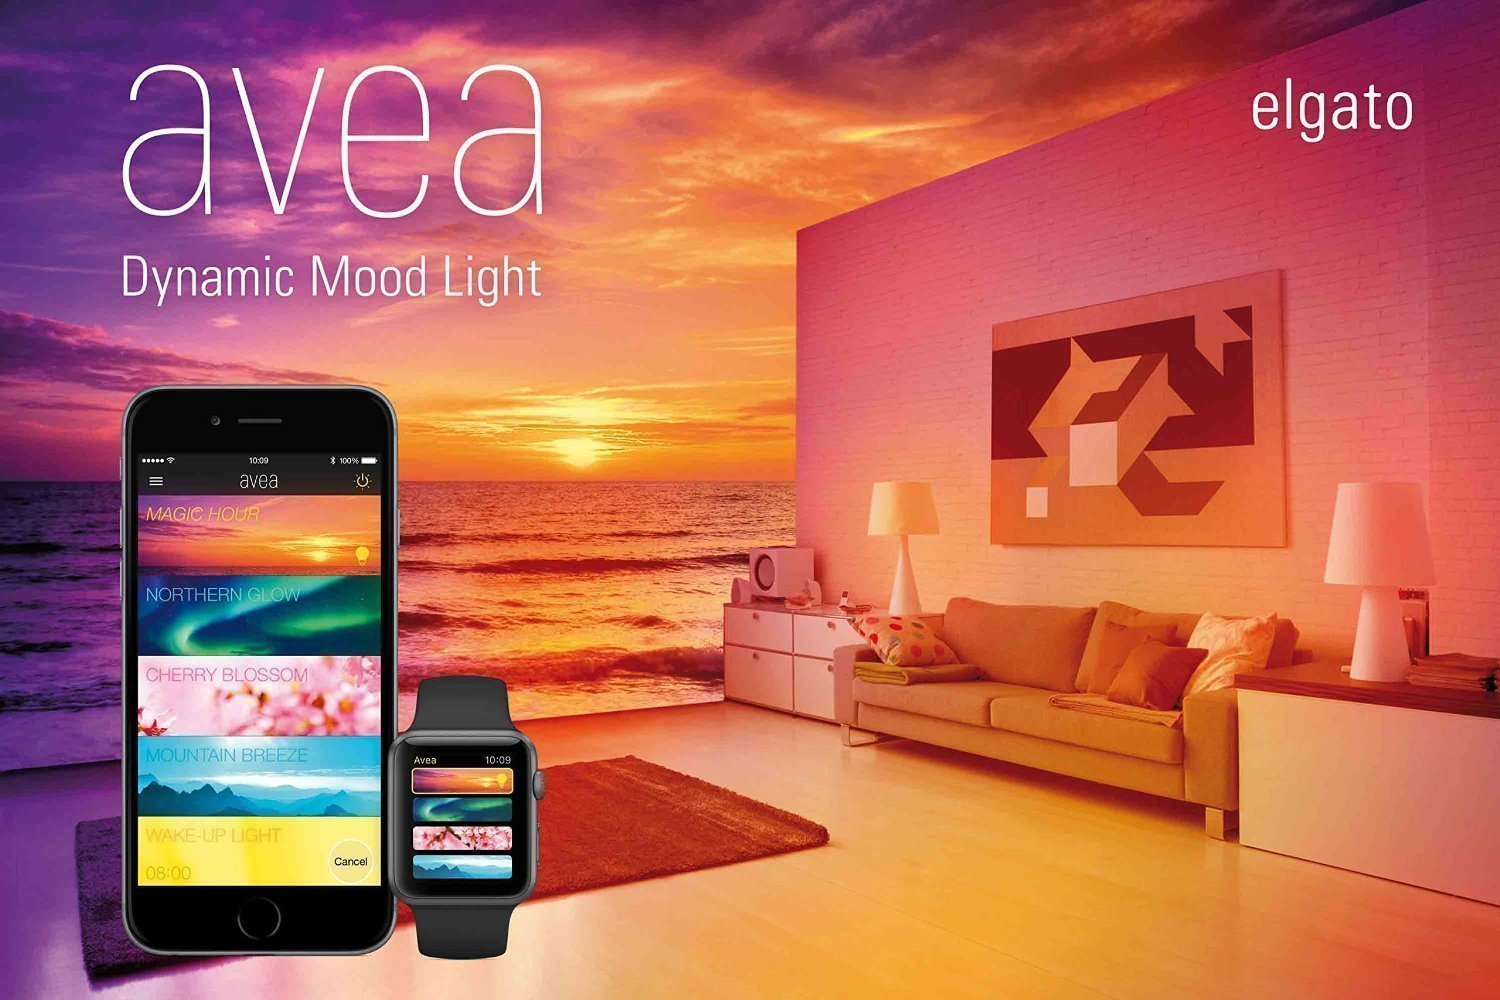 Elgato Avea Smart LED Bulb is an affordable device that can be controlled with your iPhone, iPad and Apple Watch